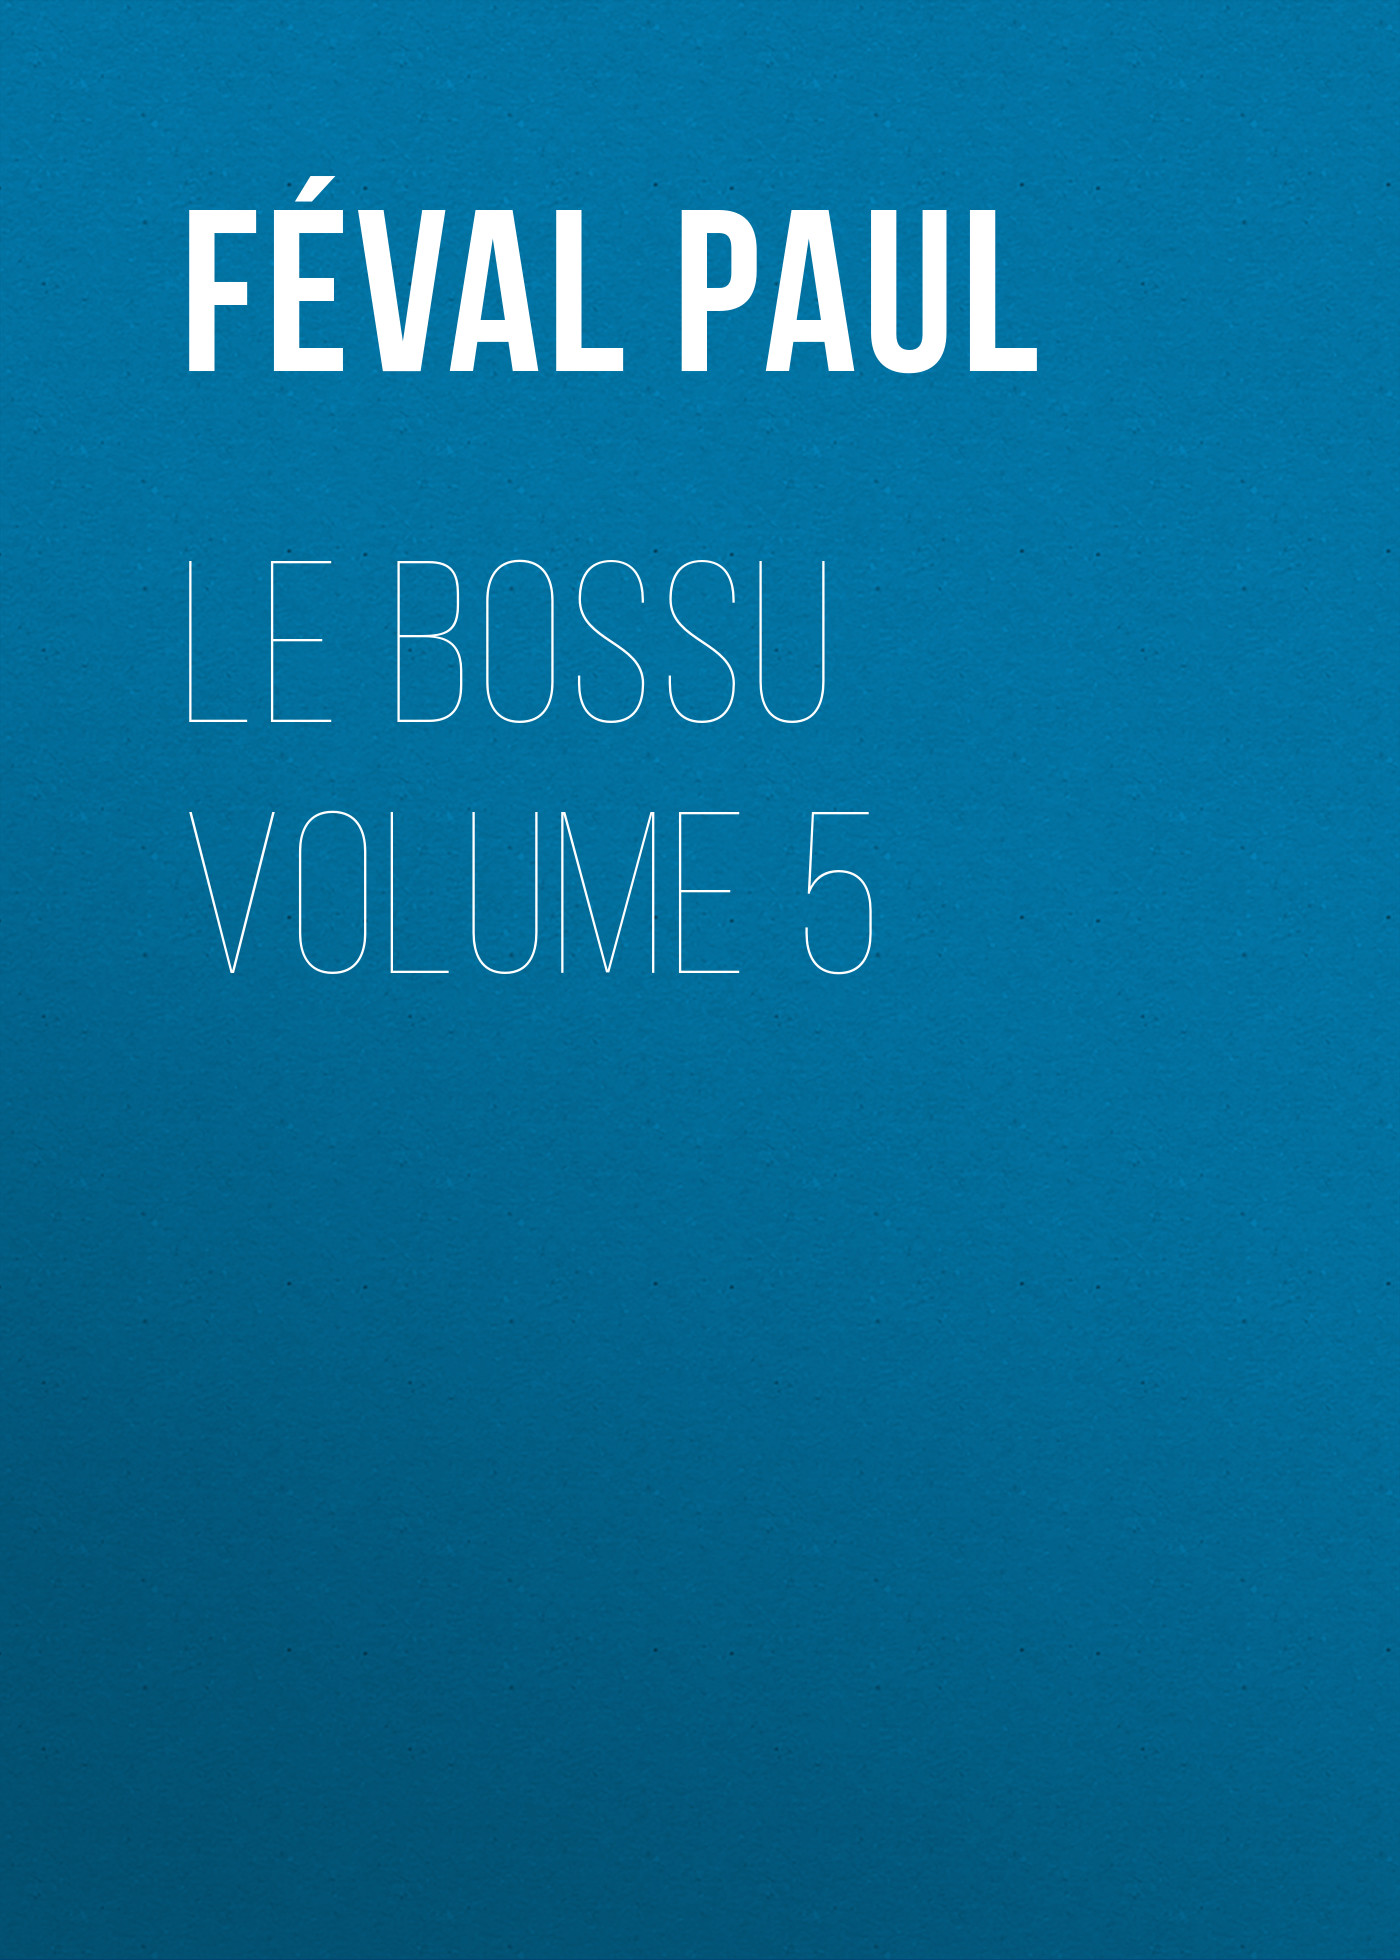 Фото - Féval Paul Le Bossu Volume 5 jean paul gaultier le male